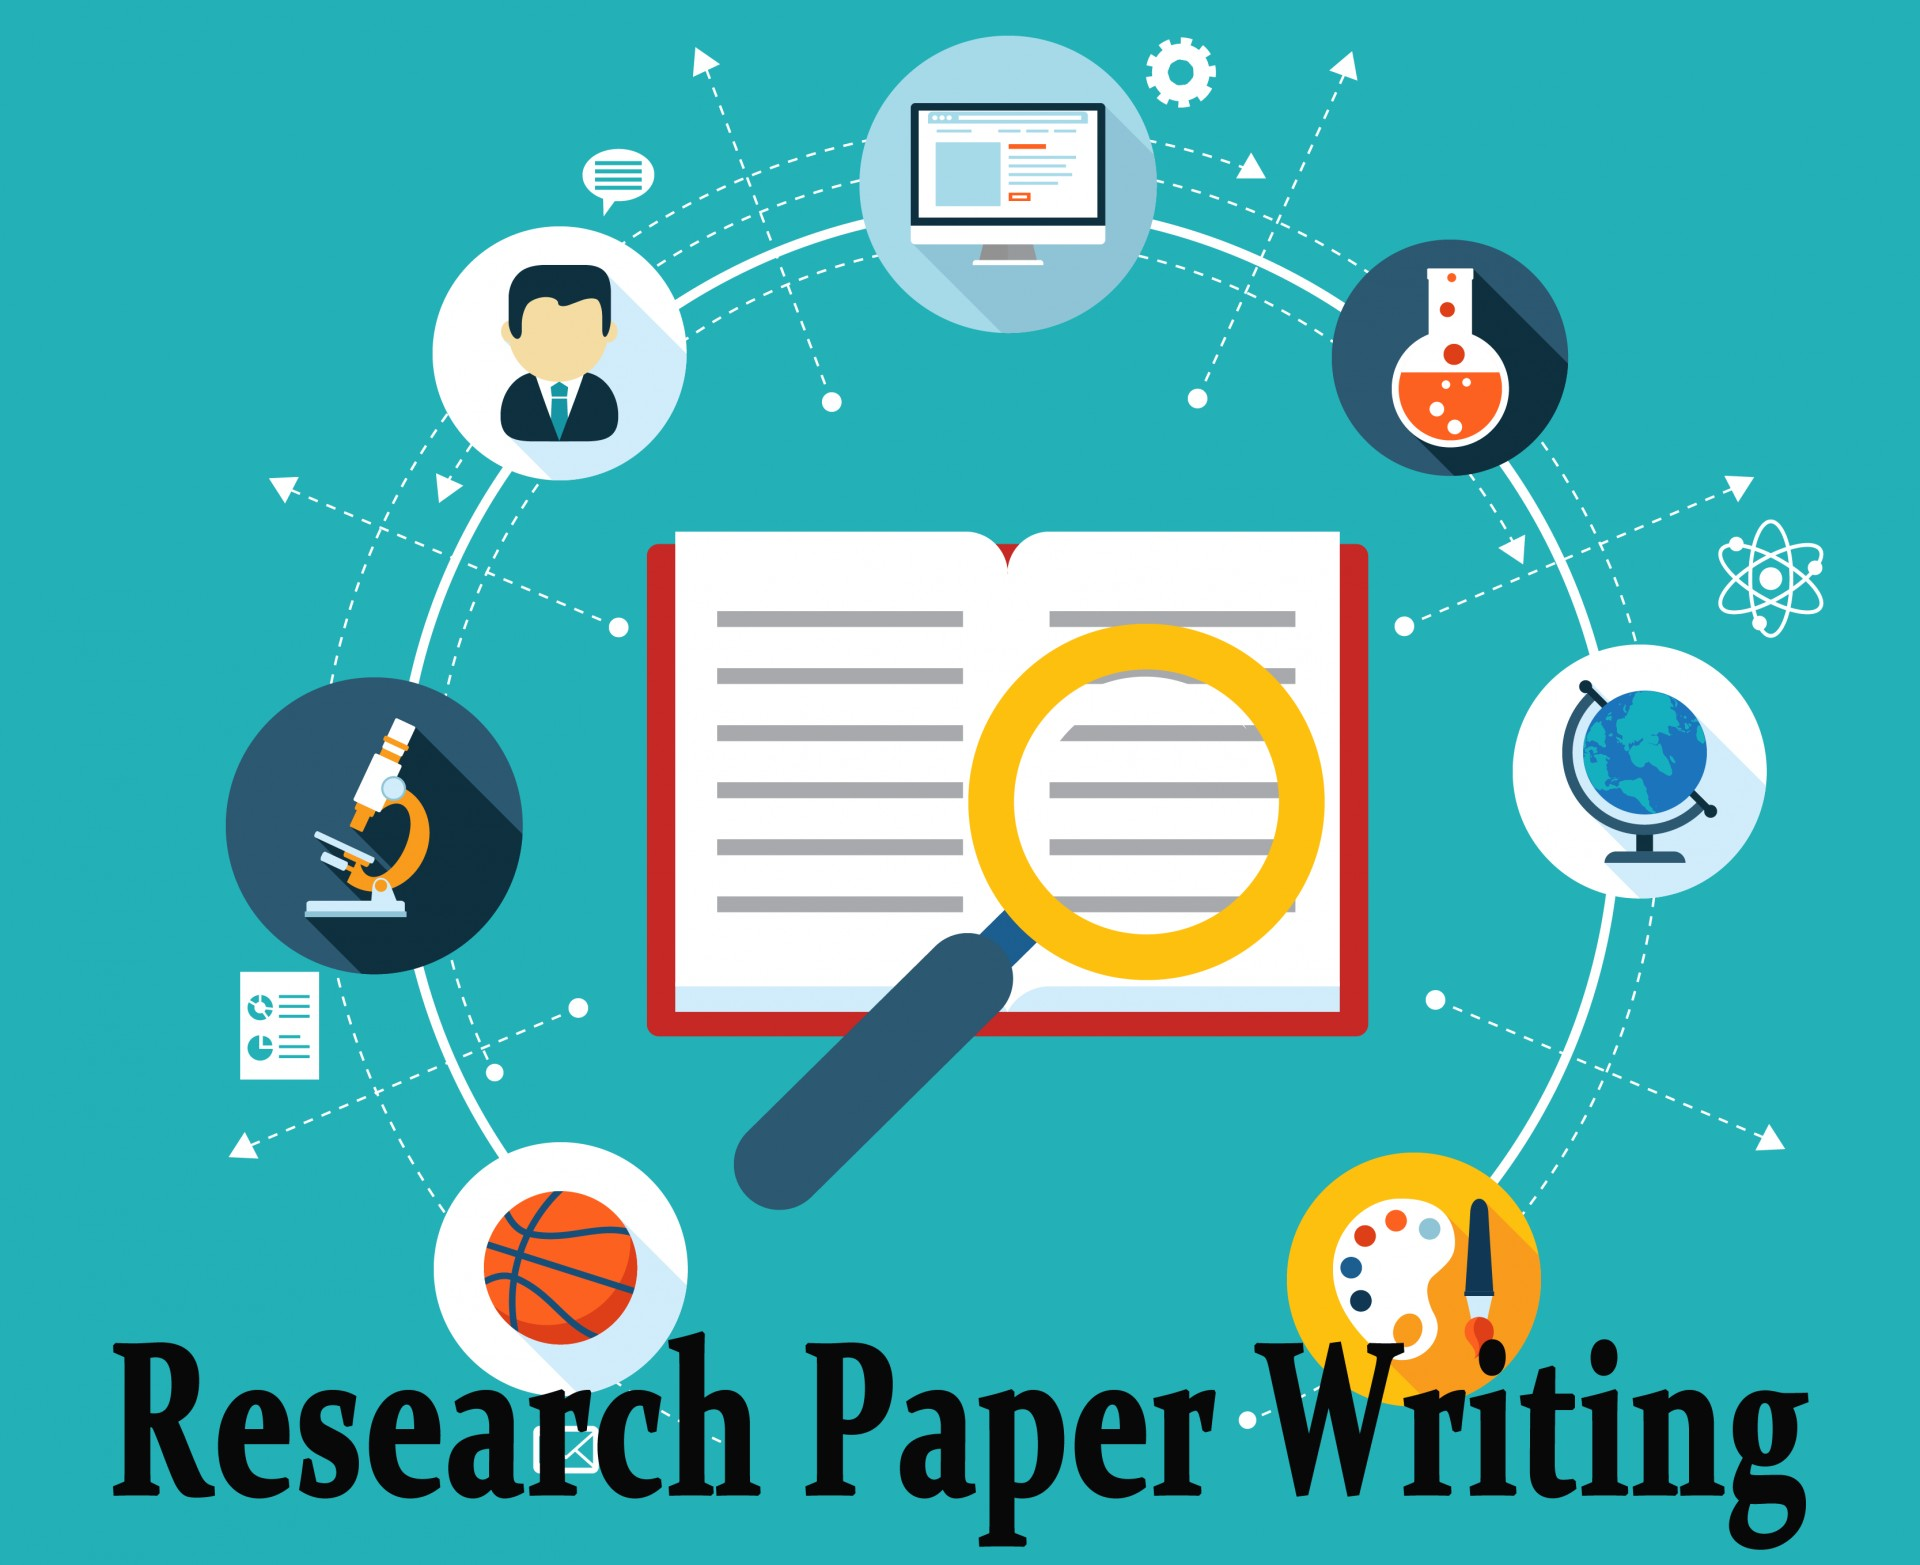 002 503 Effective Research Writing Written Wonderful Paper Pre Papers Free Already For Pdf 1920